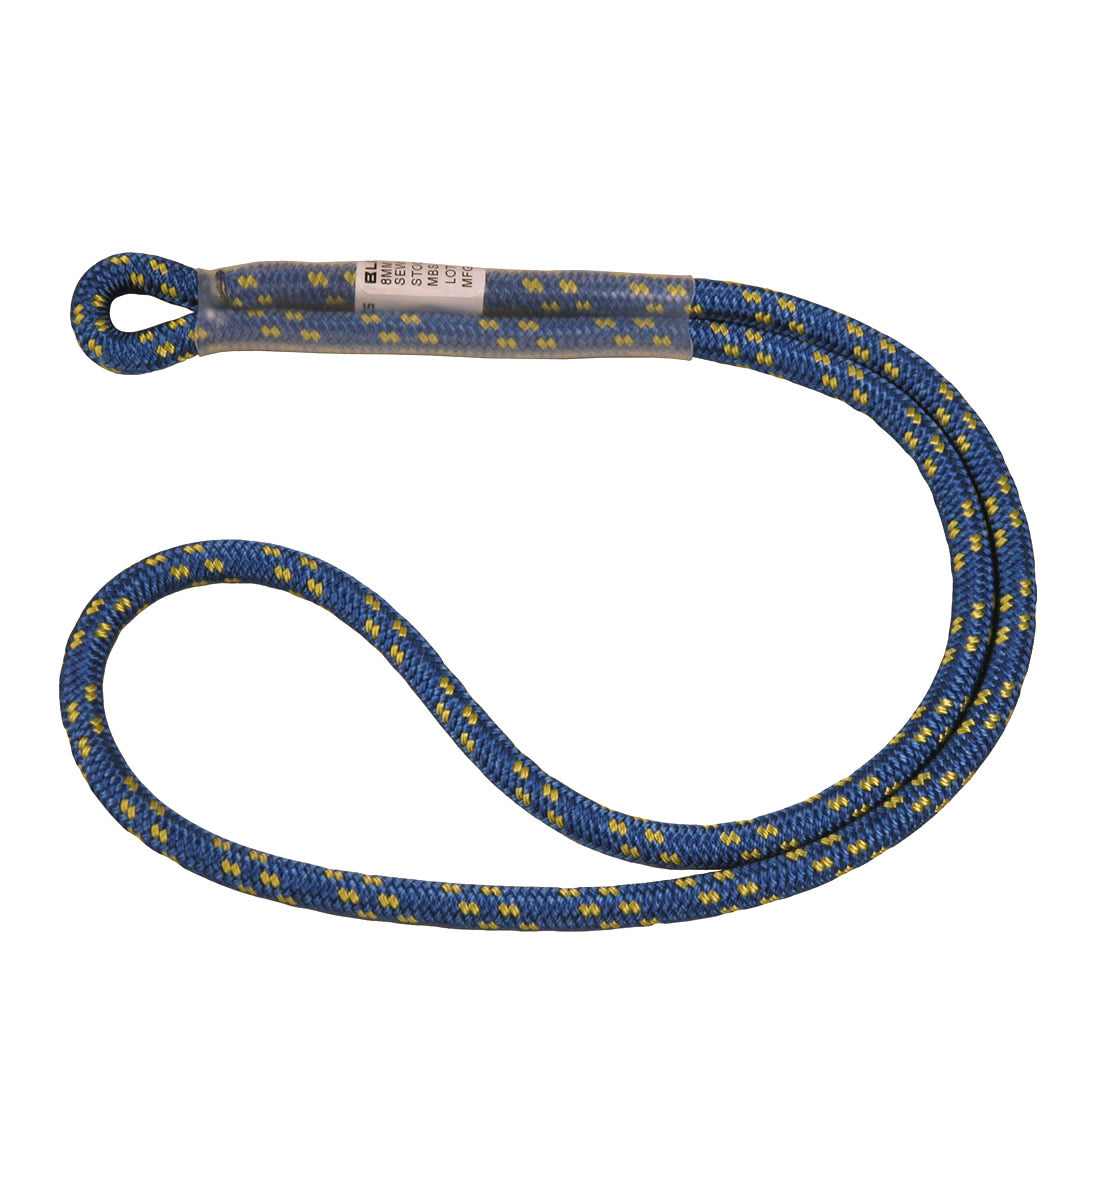 Bluewater Sewn Prusik Blue Loop - 8MM